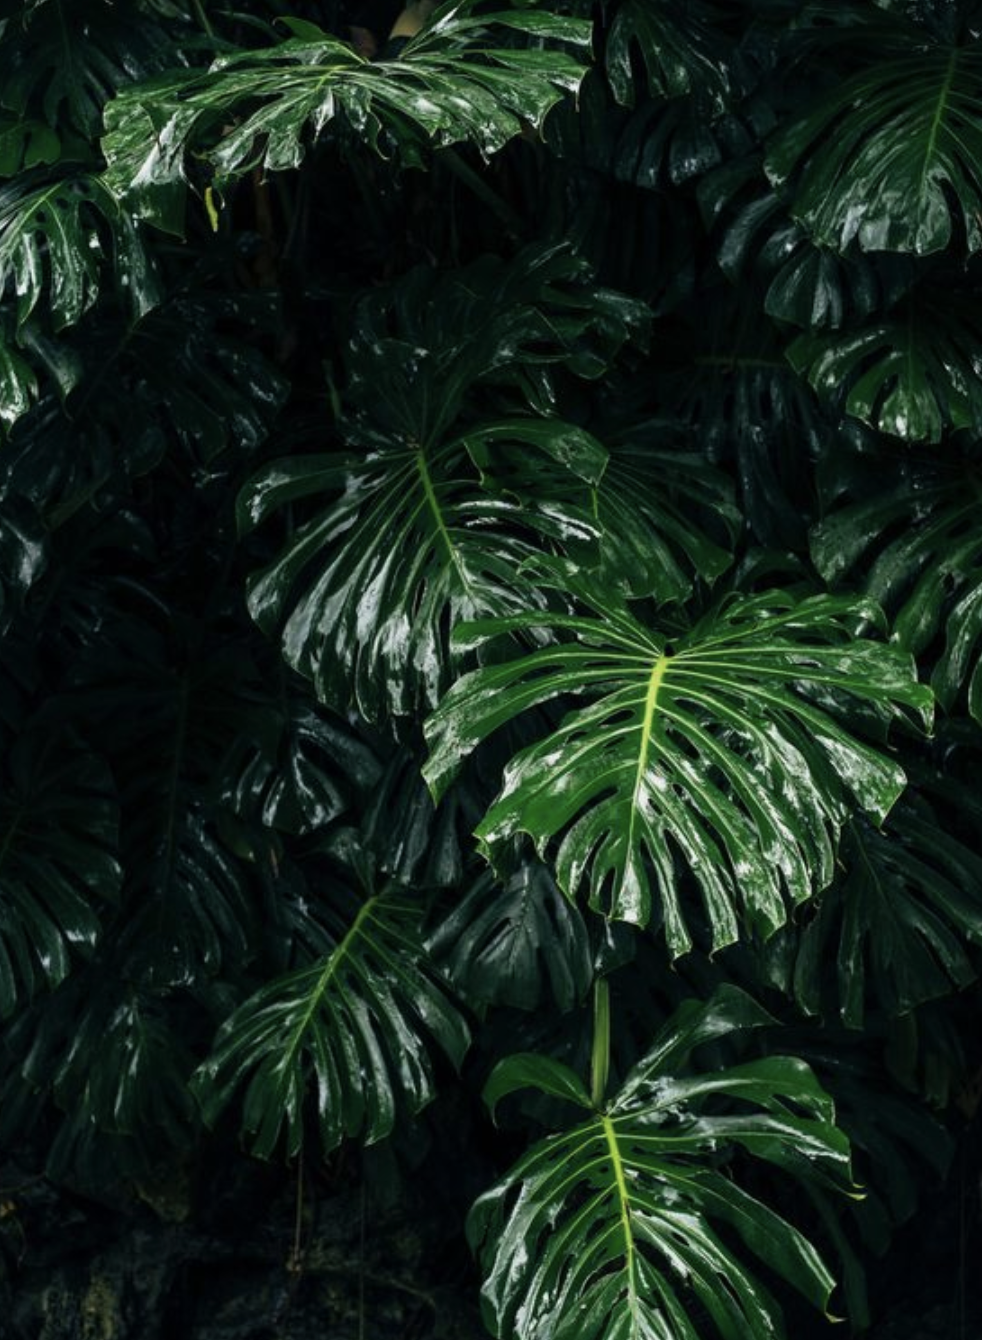 Tropical Plants Iphone Wallpaper Iphone 11 Backgrounds Palm Plants Monstera Leaf Wallpapter Hawaii Vibe Dark Green Aesthetic Green Nature Plant Aesthetic